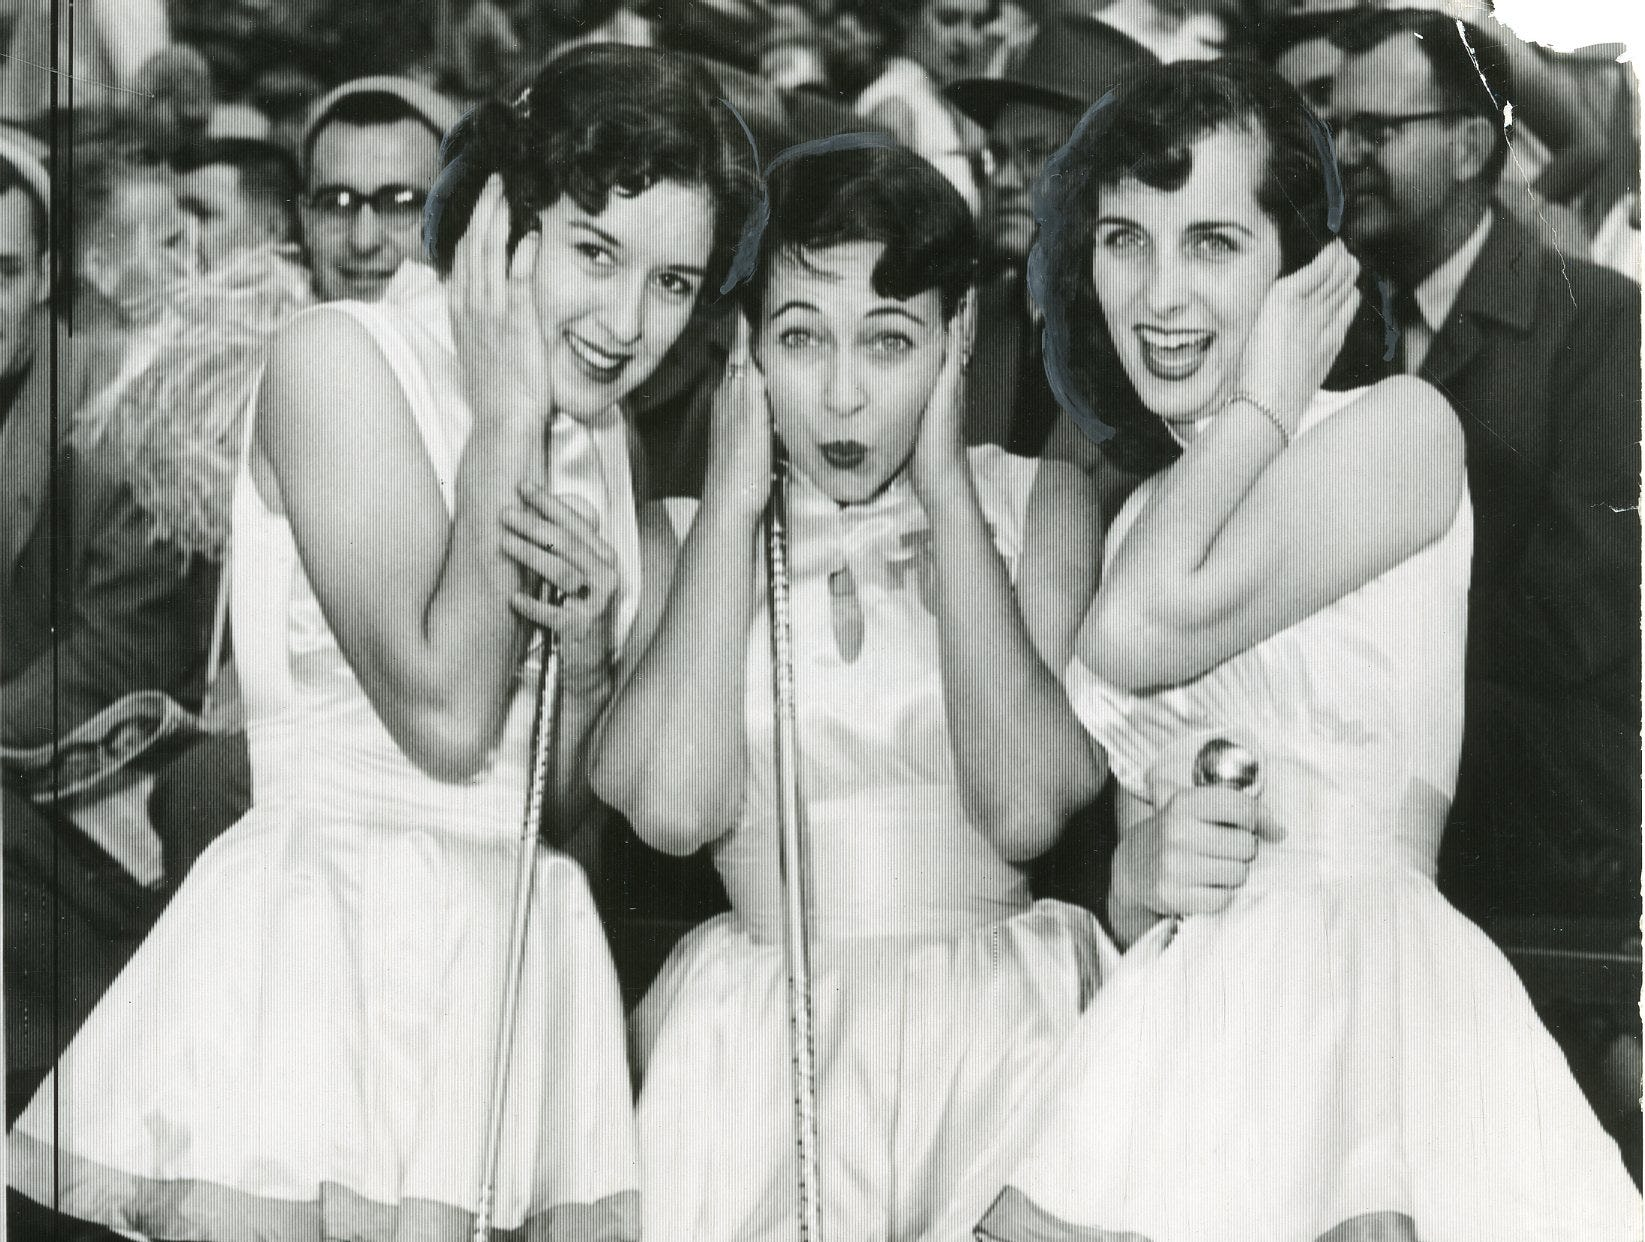 UT majorettes Anne Dale Guinn, Mary Lee Thomas and Anne Thompson are chilly during a November, 1954 game.